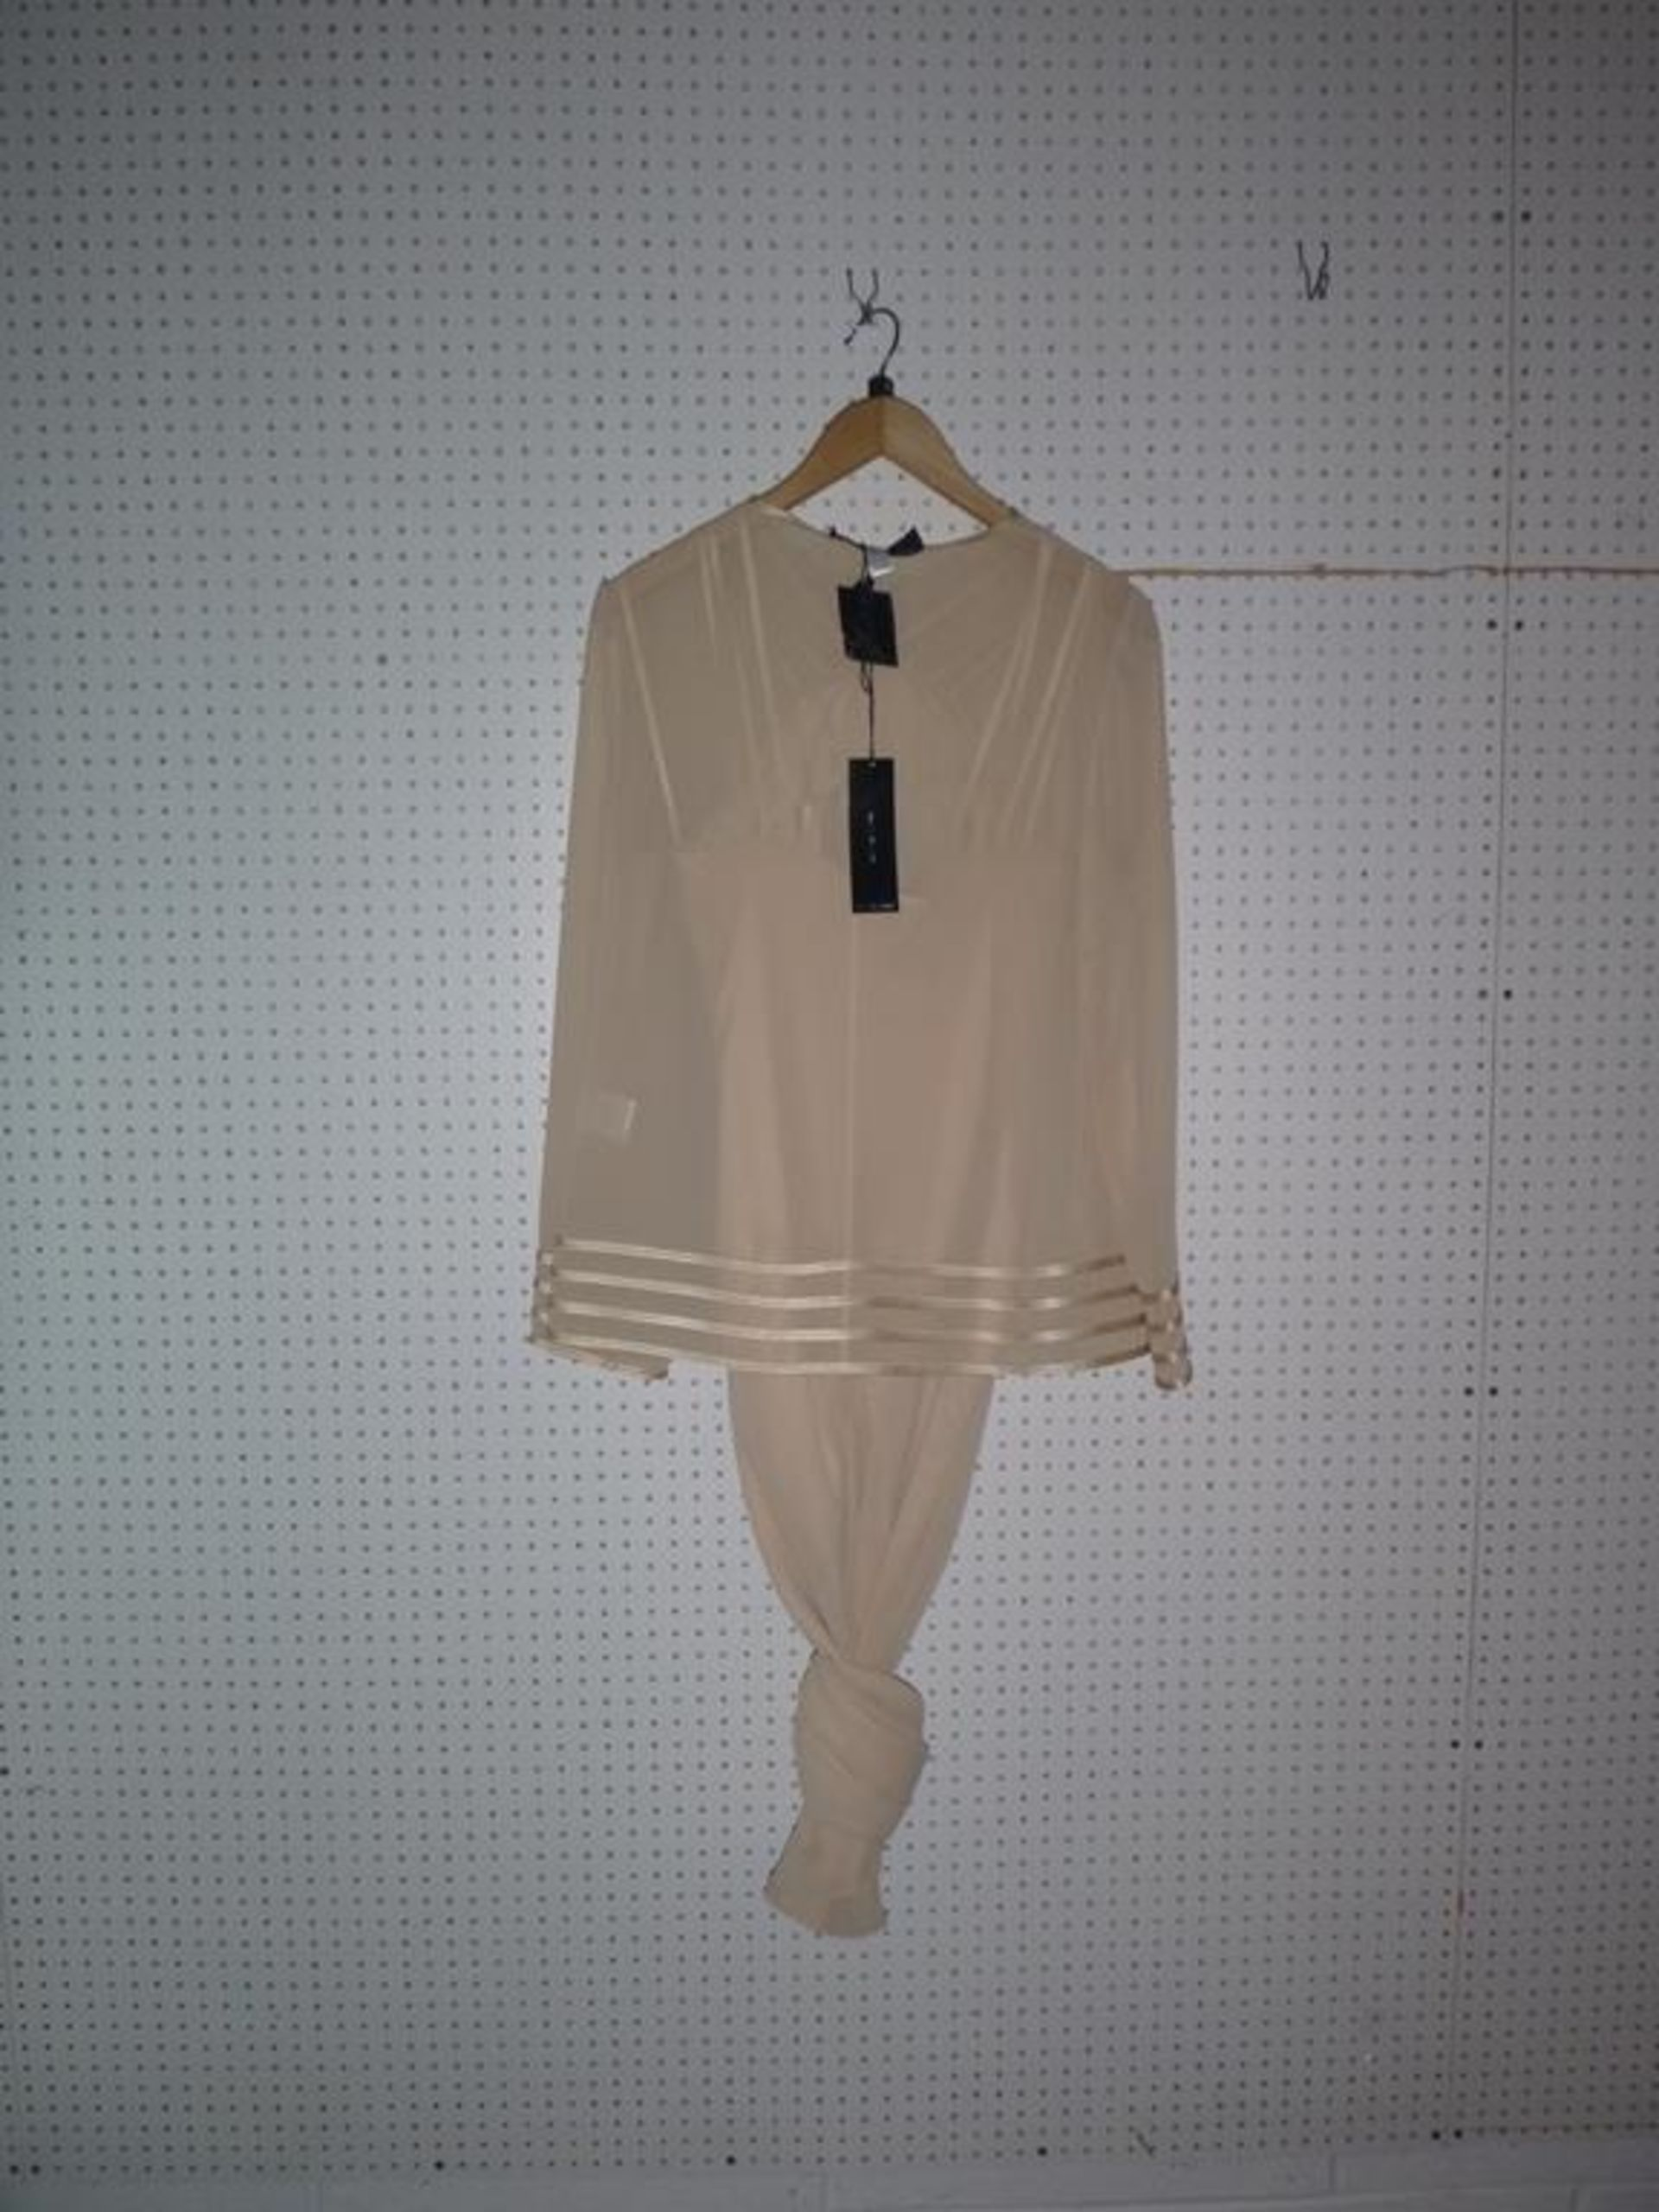 Lot 8022 - * Four Ladies Garments to include examples by Veni Infantino (size 12), AS by Ronald Joyce (size